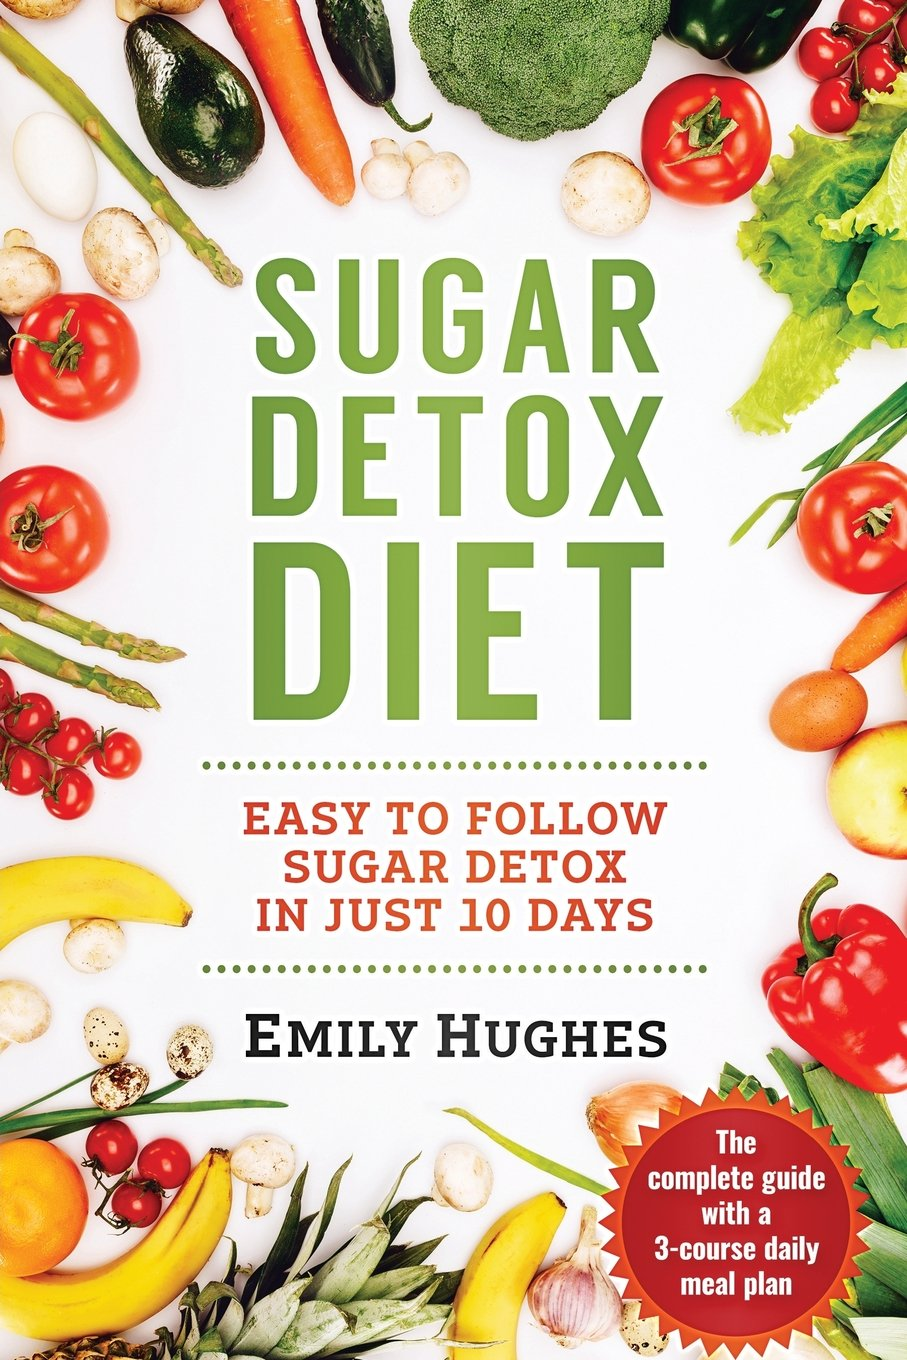 Sugar Detox Diet: Easy to Follow Sugar Detox in Just 10 Days